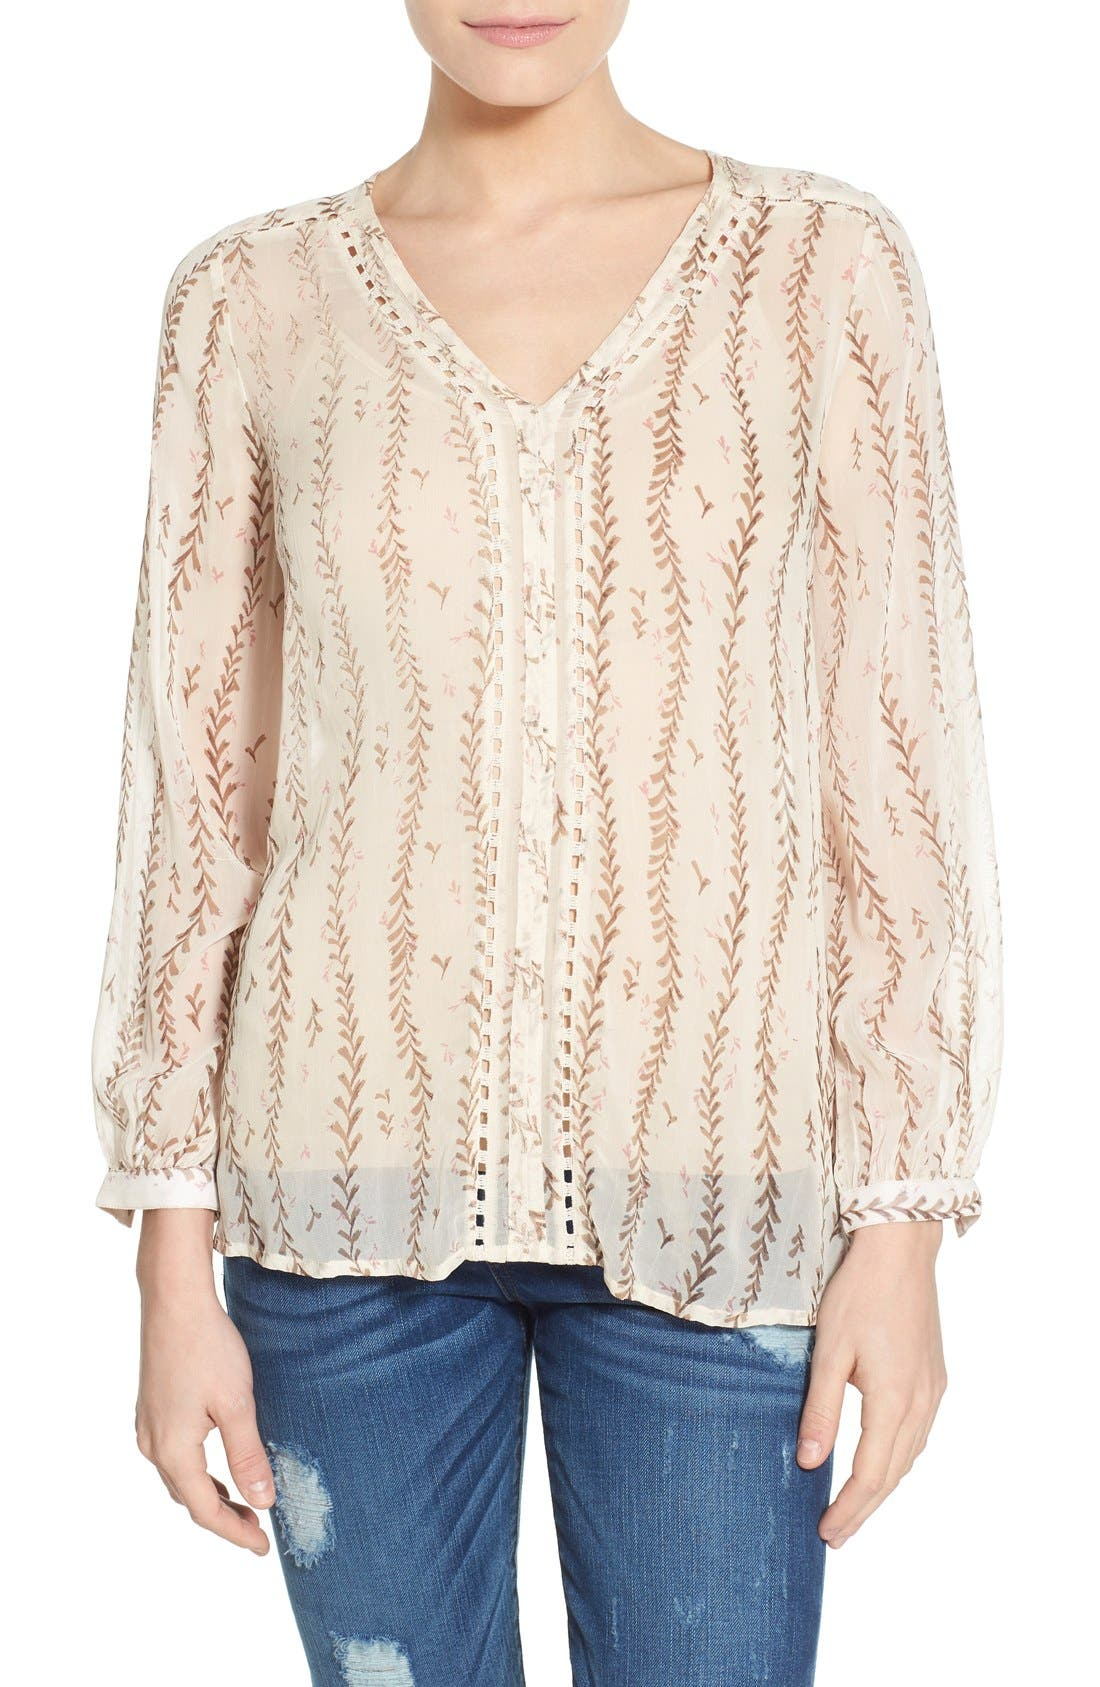 Alternate Image 1 Selected - Lucky Brand Lace Inset Vine Print Blouse